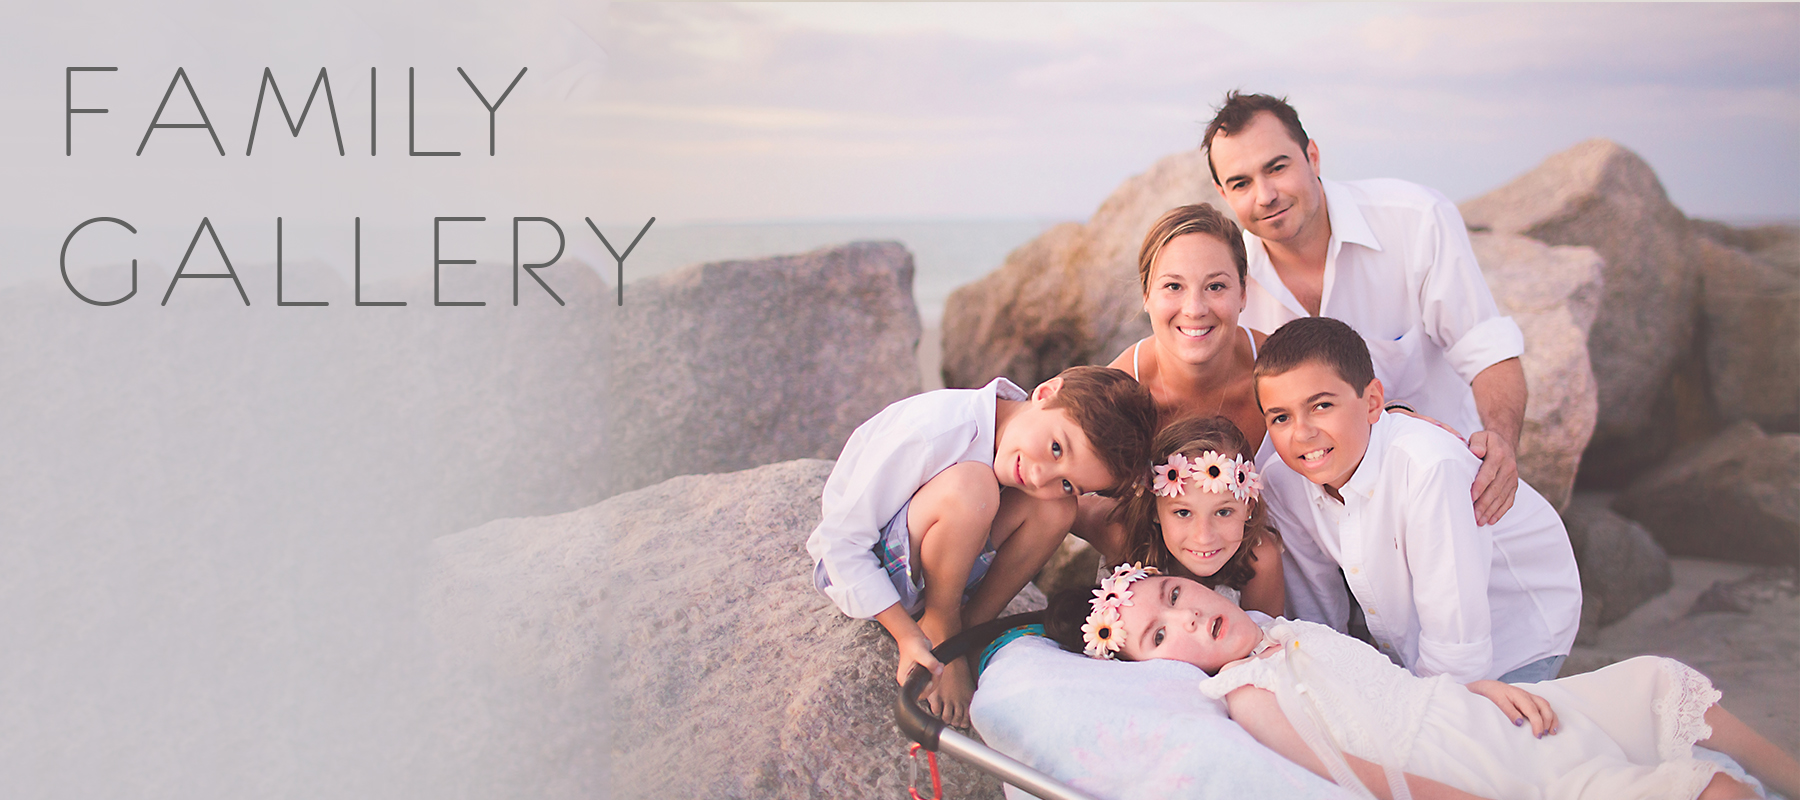 family photography-gallery-monterey